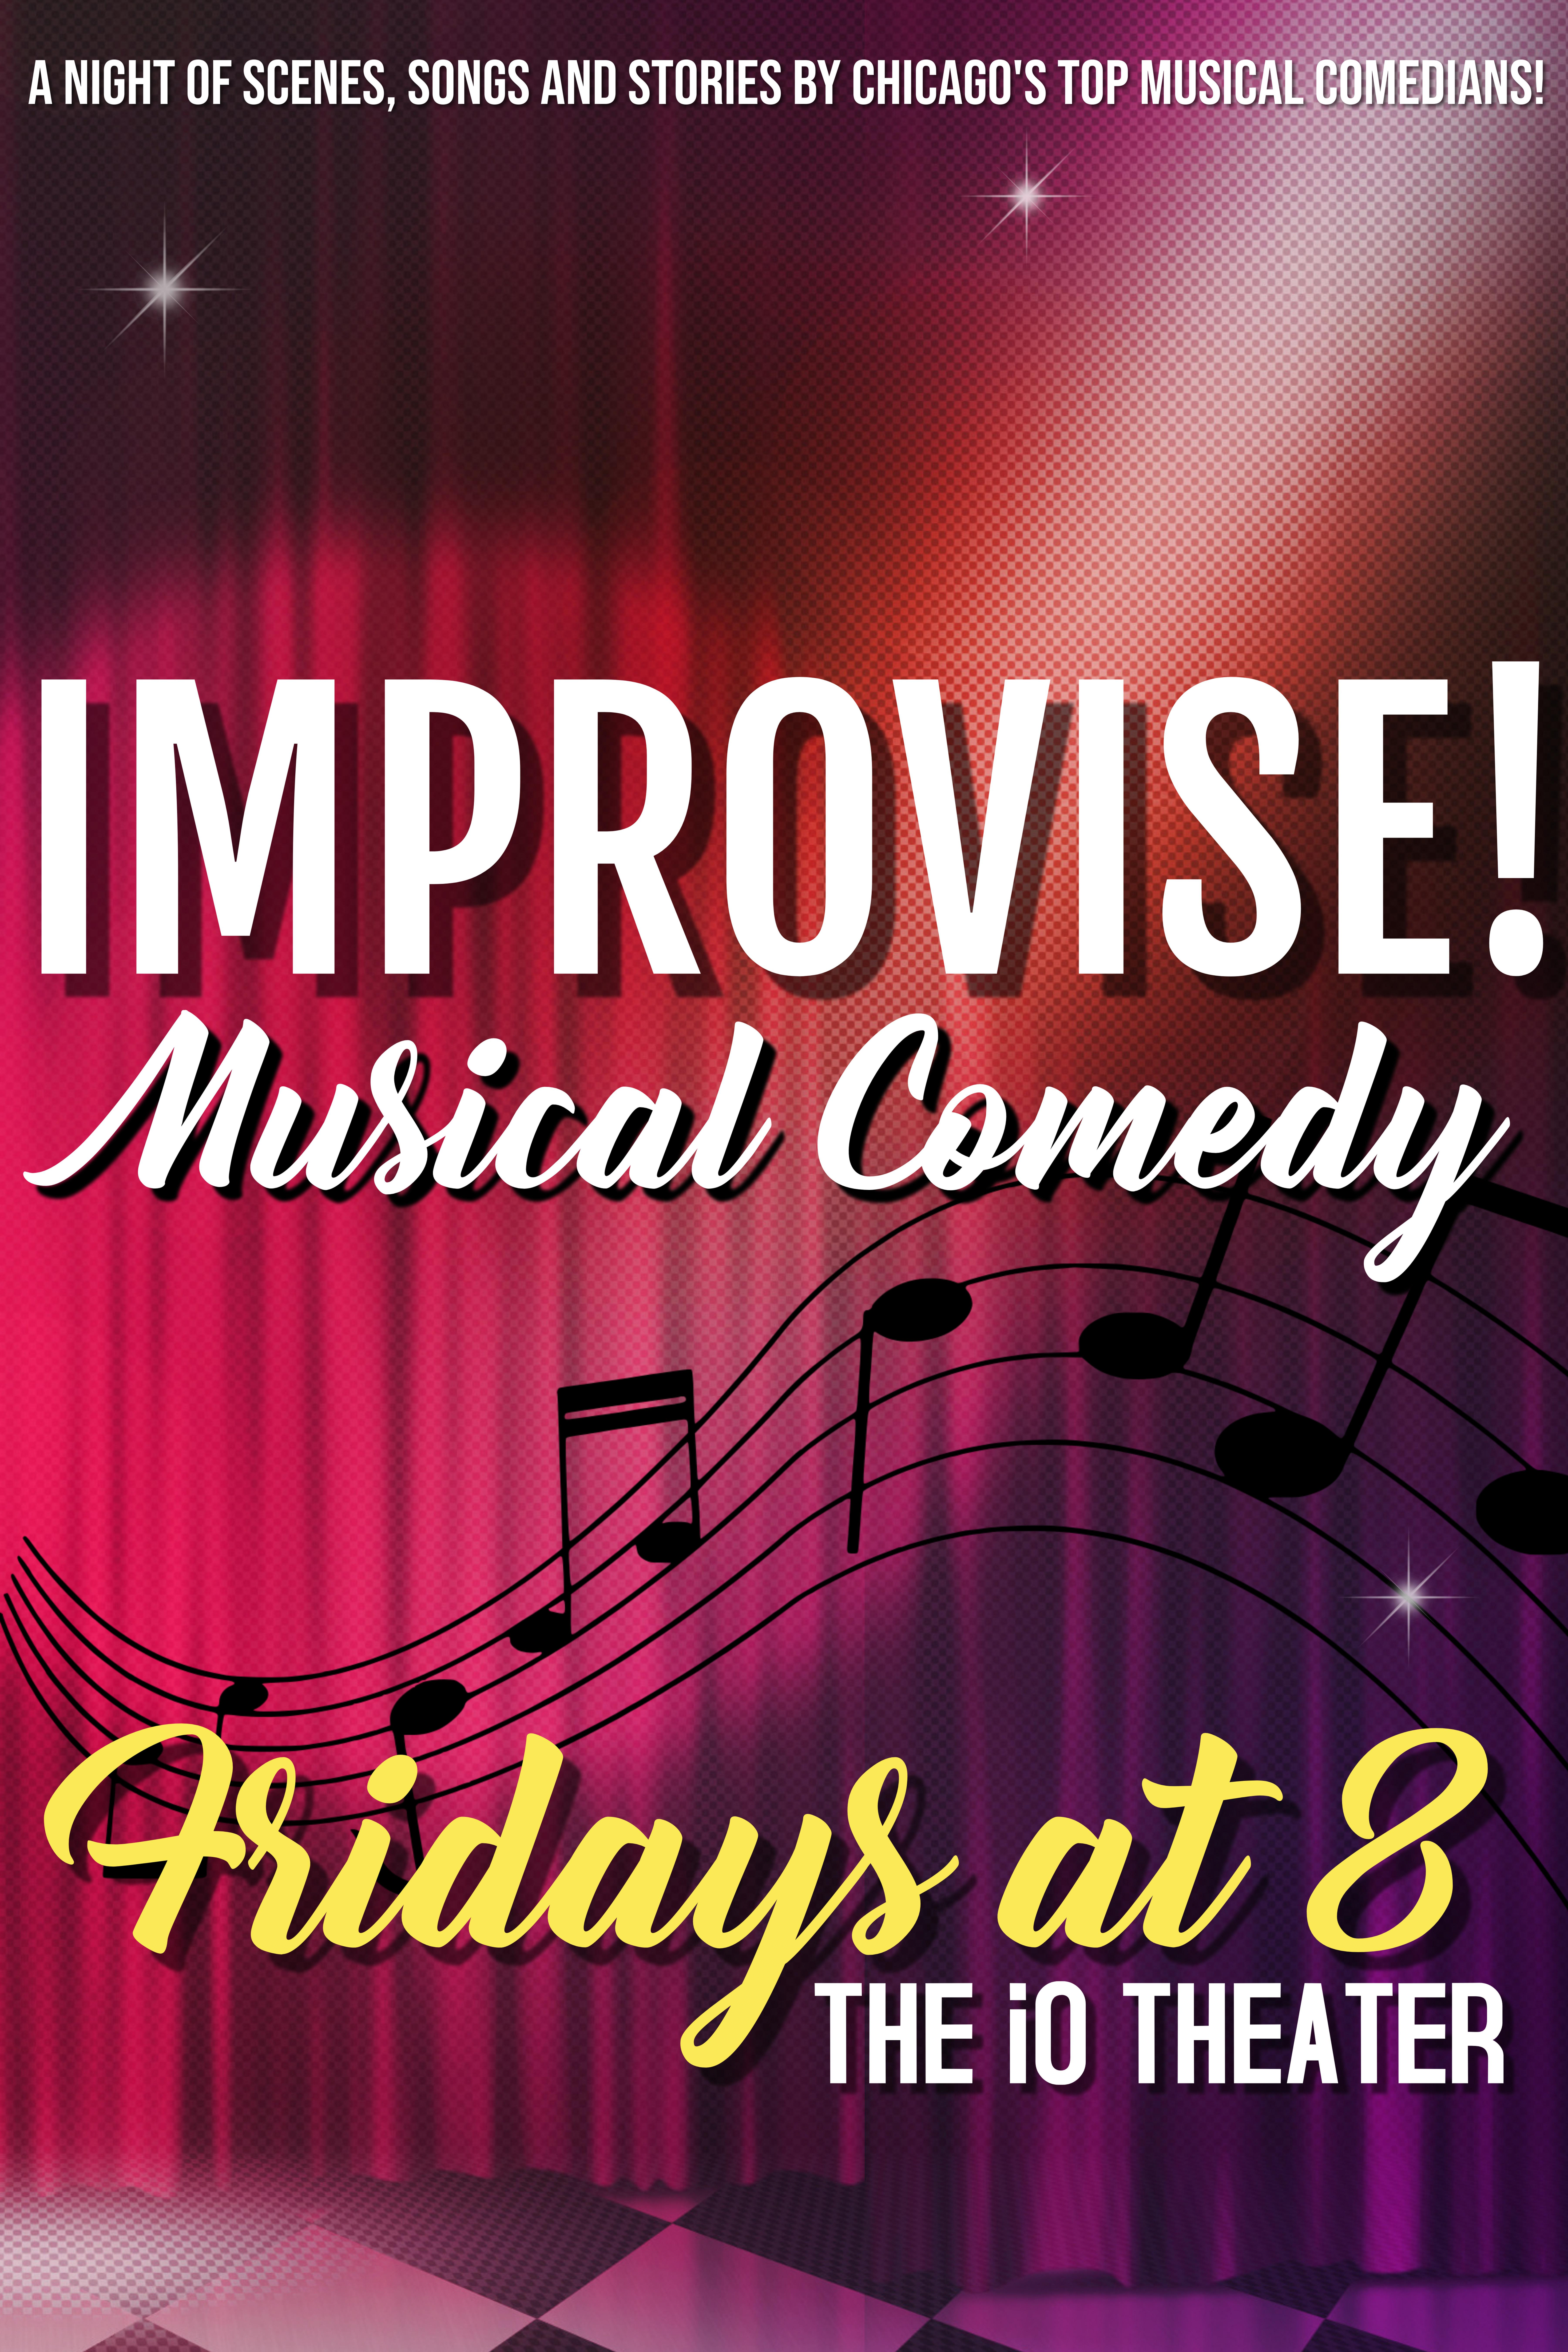 Improvise! Musical Comedy ft. Groovebox